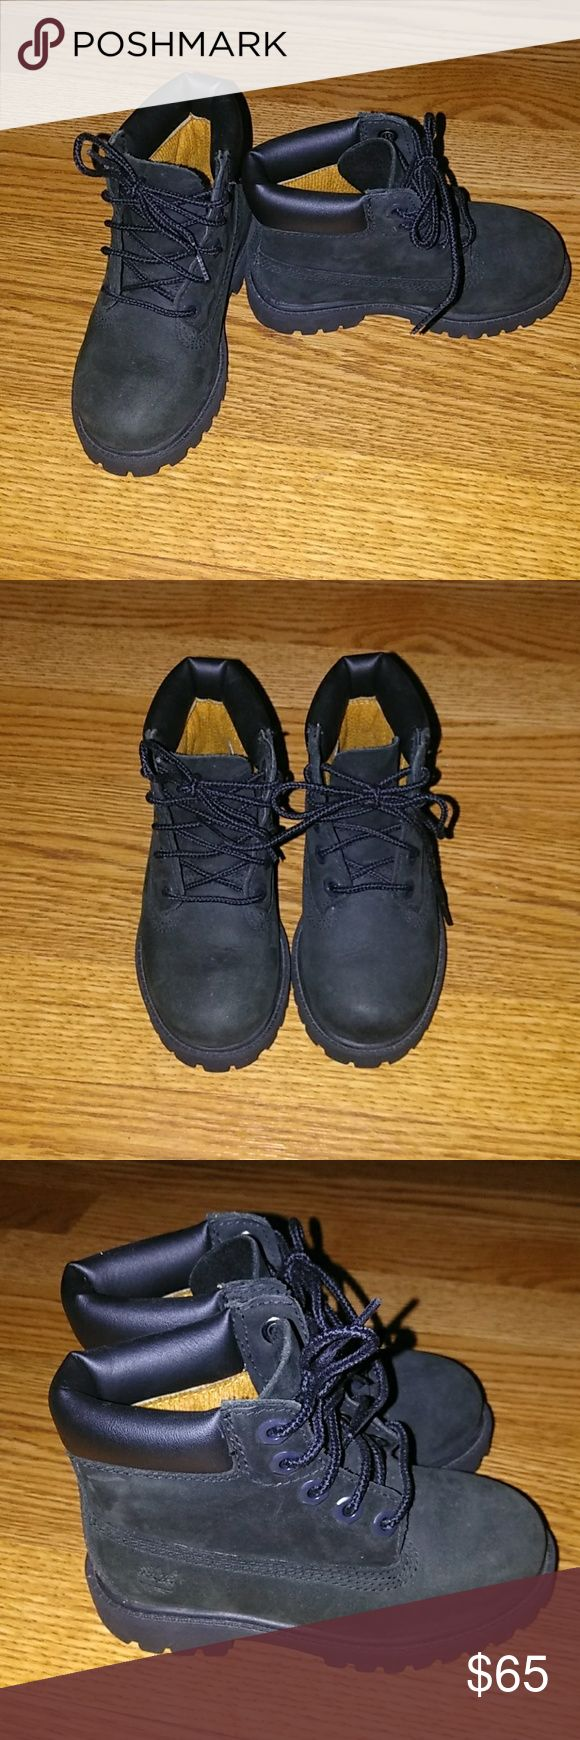 Black timberland boots for toddler sz 8 Black Timberland boots for toddler boys size 8. Like new. Only worn once if that. Timberland Shoes Boots